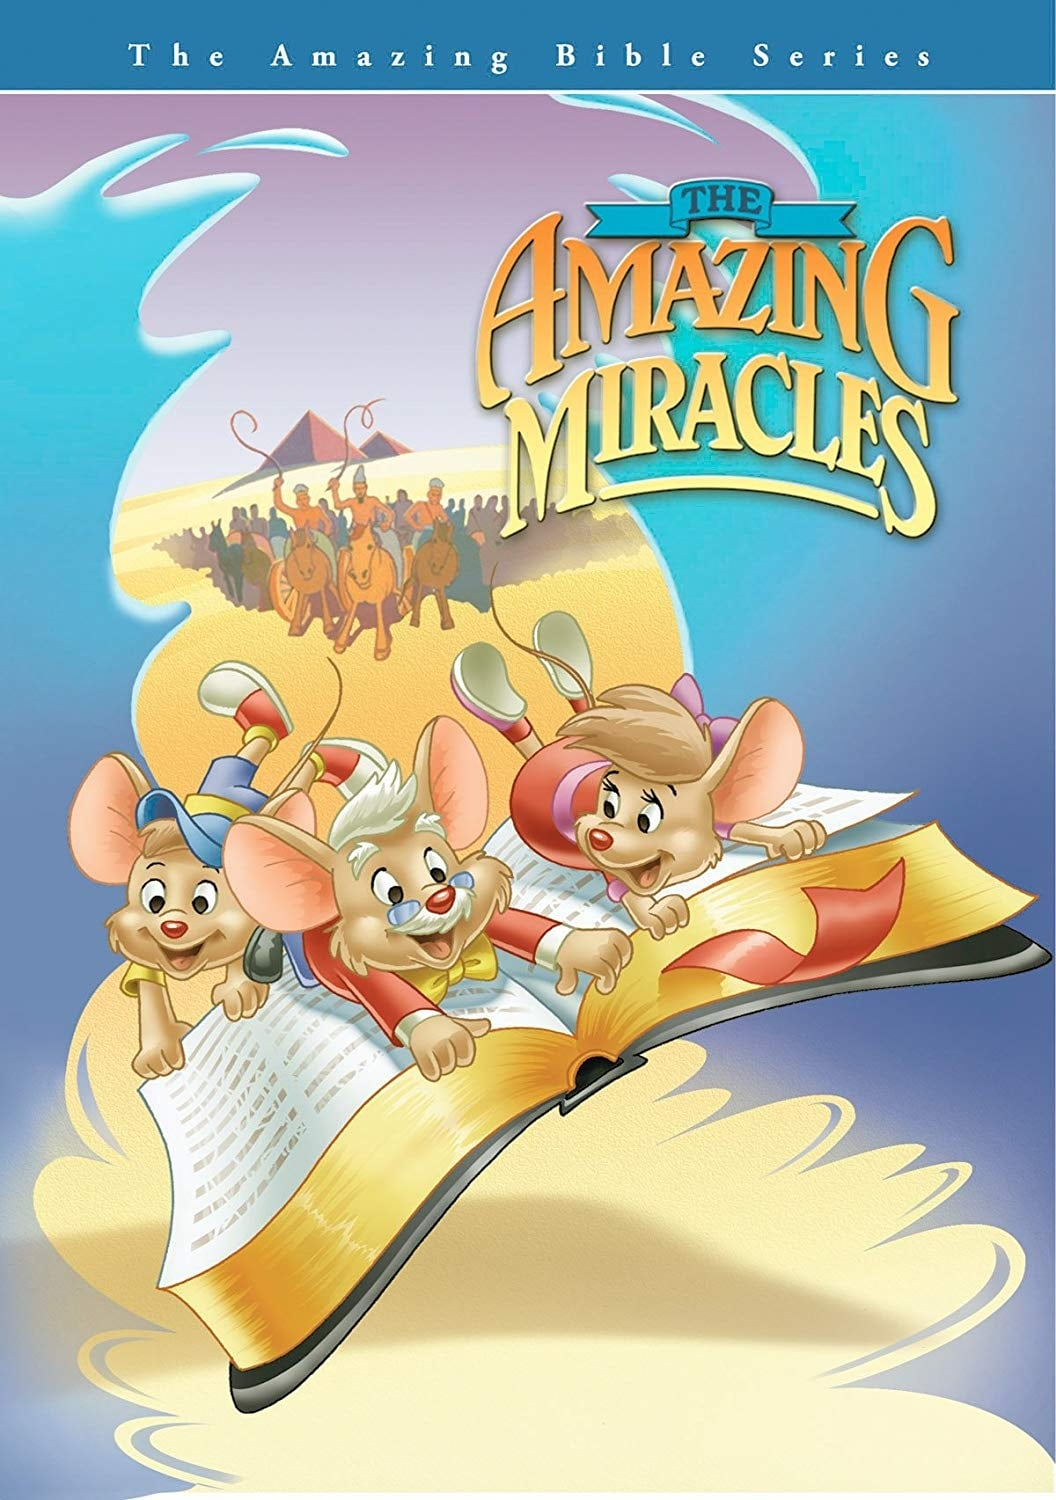 The Amazing Bible Series: The Amazing Miracles (1991)